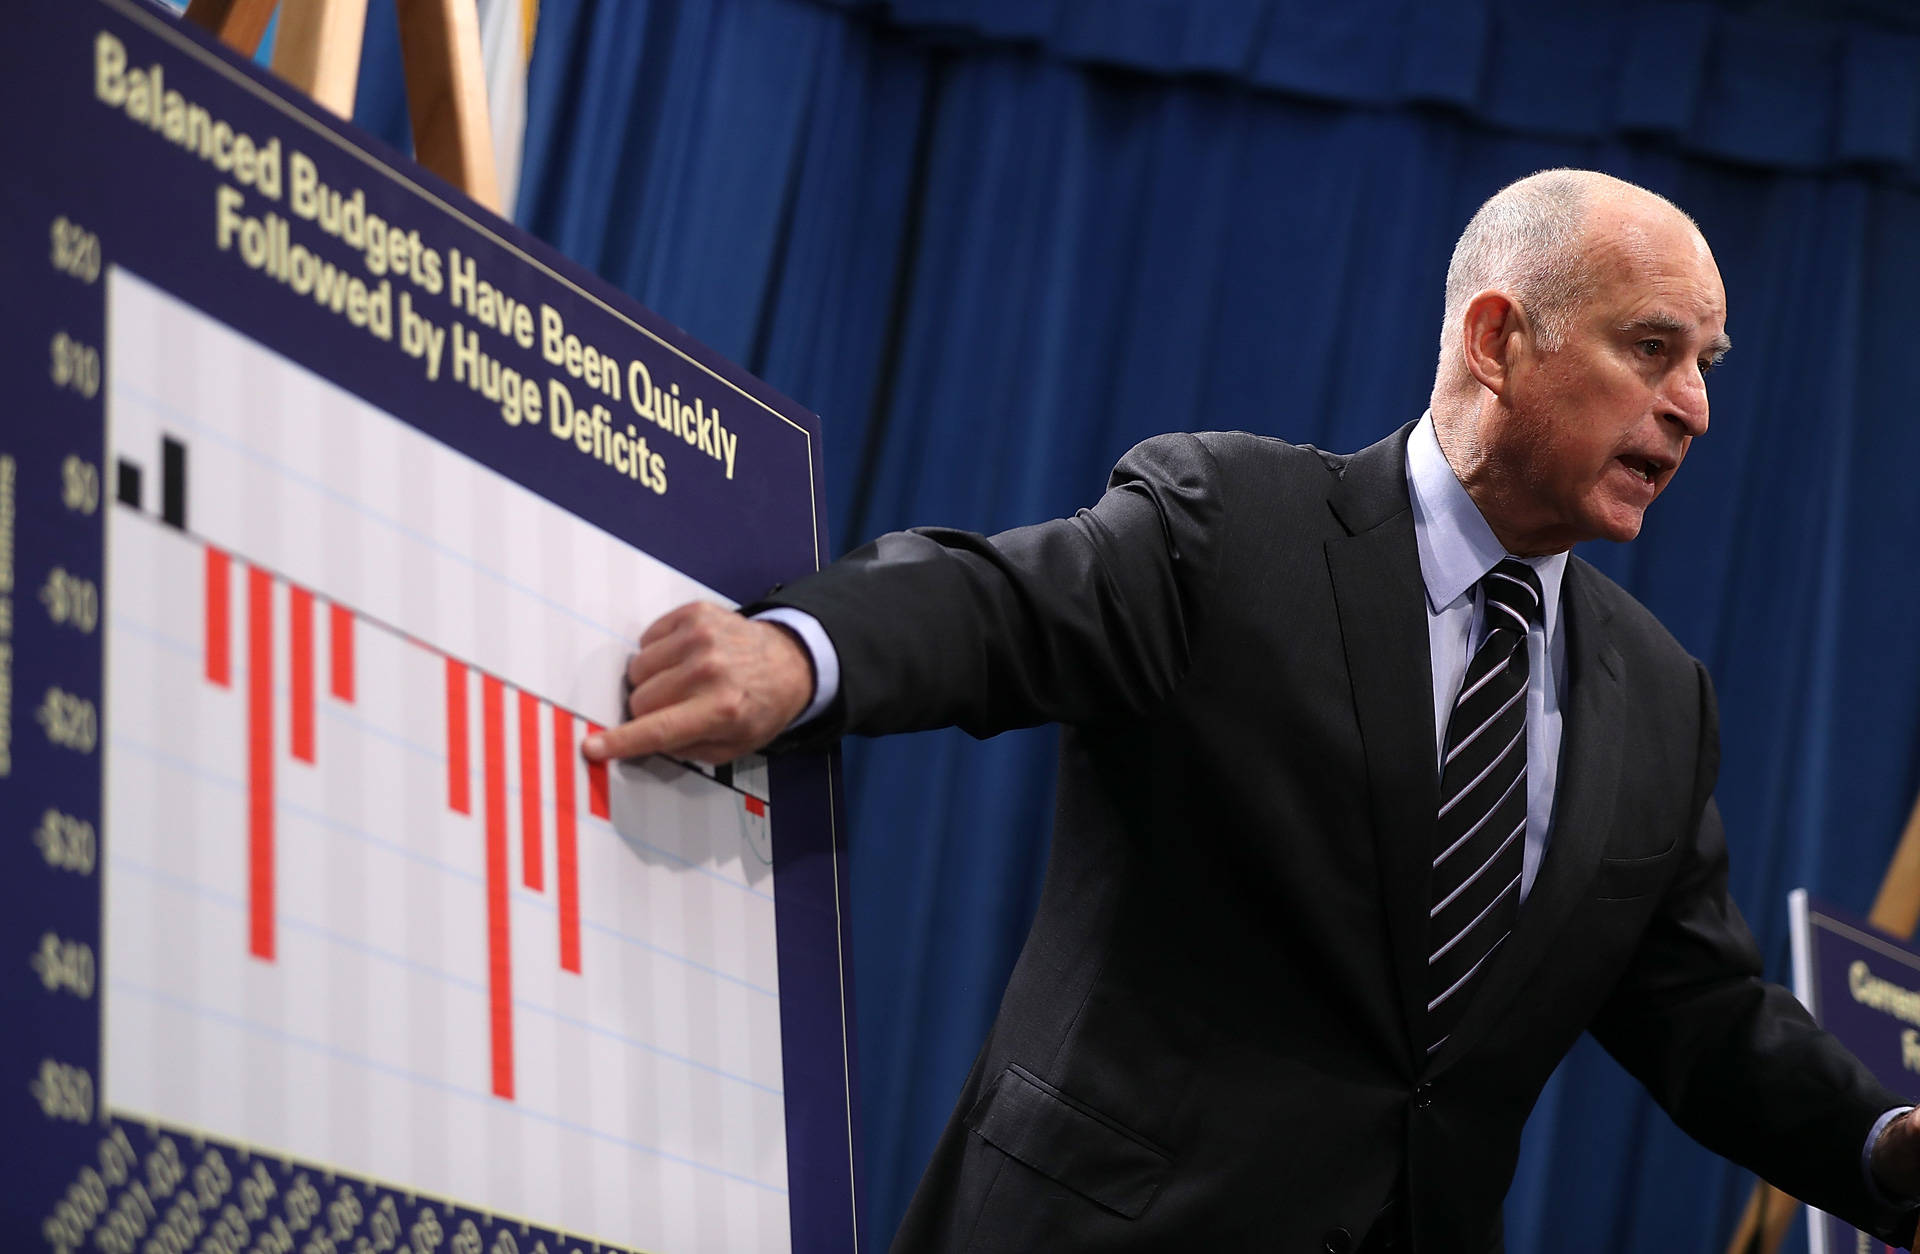 Gov. Jerry Brown speaks at a news conference where he revealed his revised budget on May 11, 2017, in Sacramento. Justin Sullivan/Getty Images